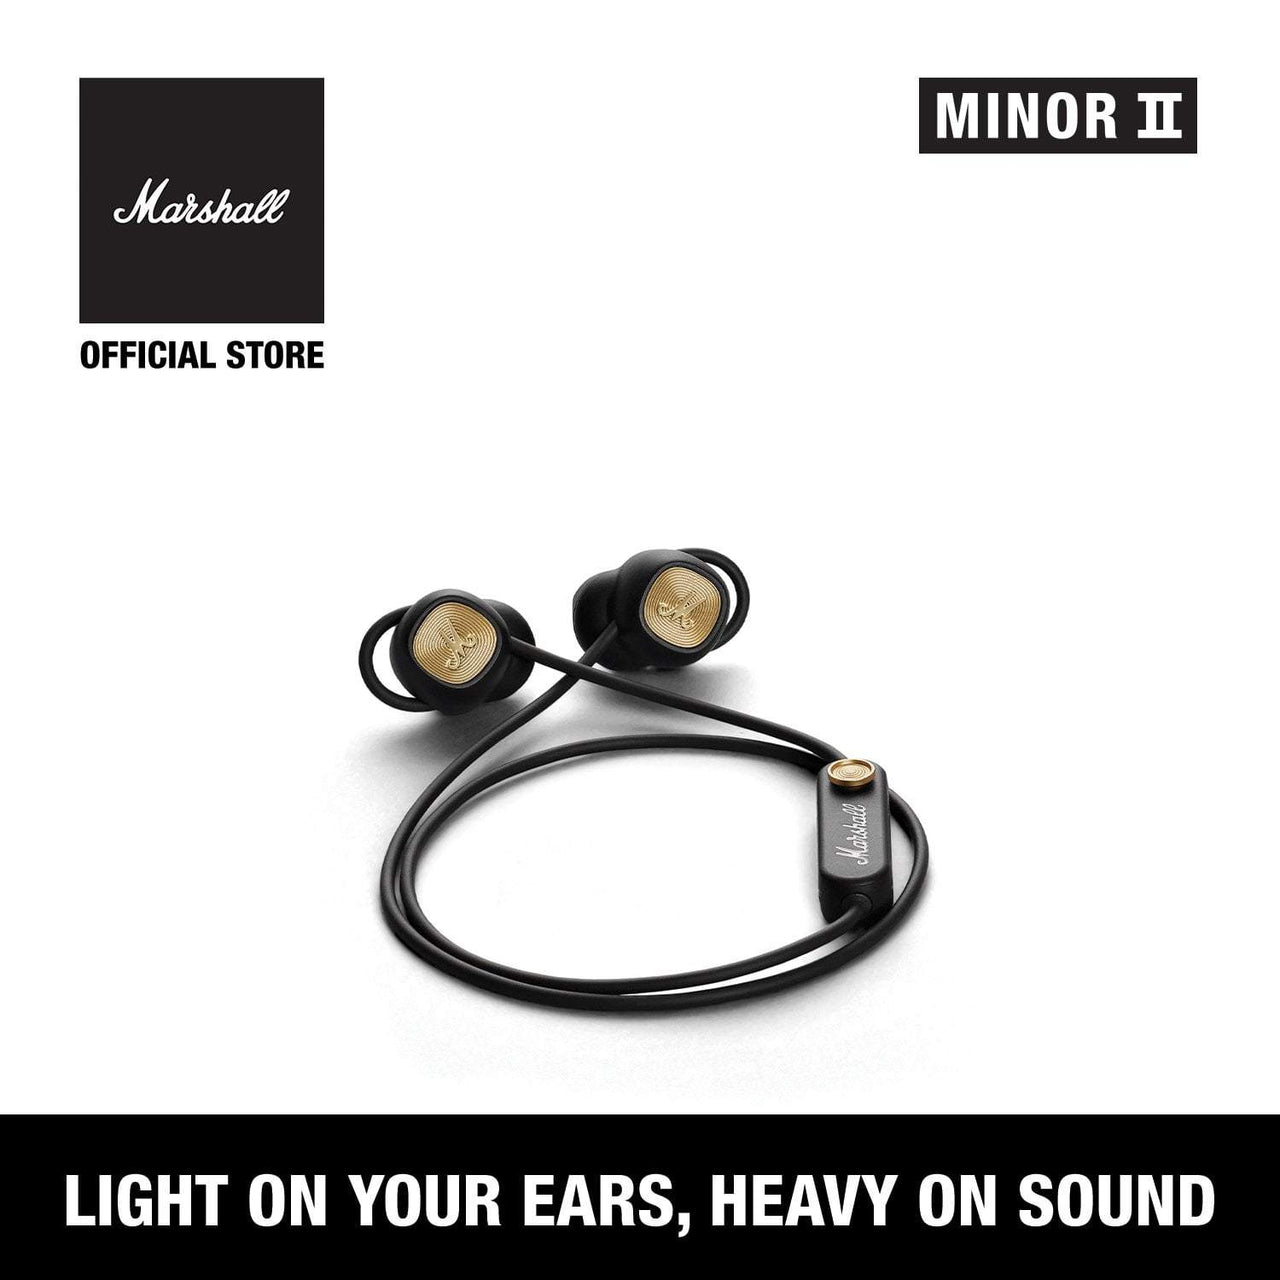 Minor II Bluetooth Black [Exclusive Partner], Headphones, Marshall Headphones, ASH Asia